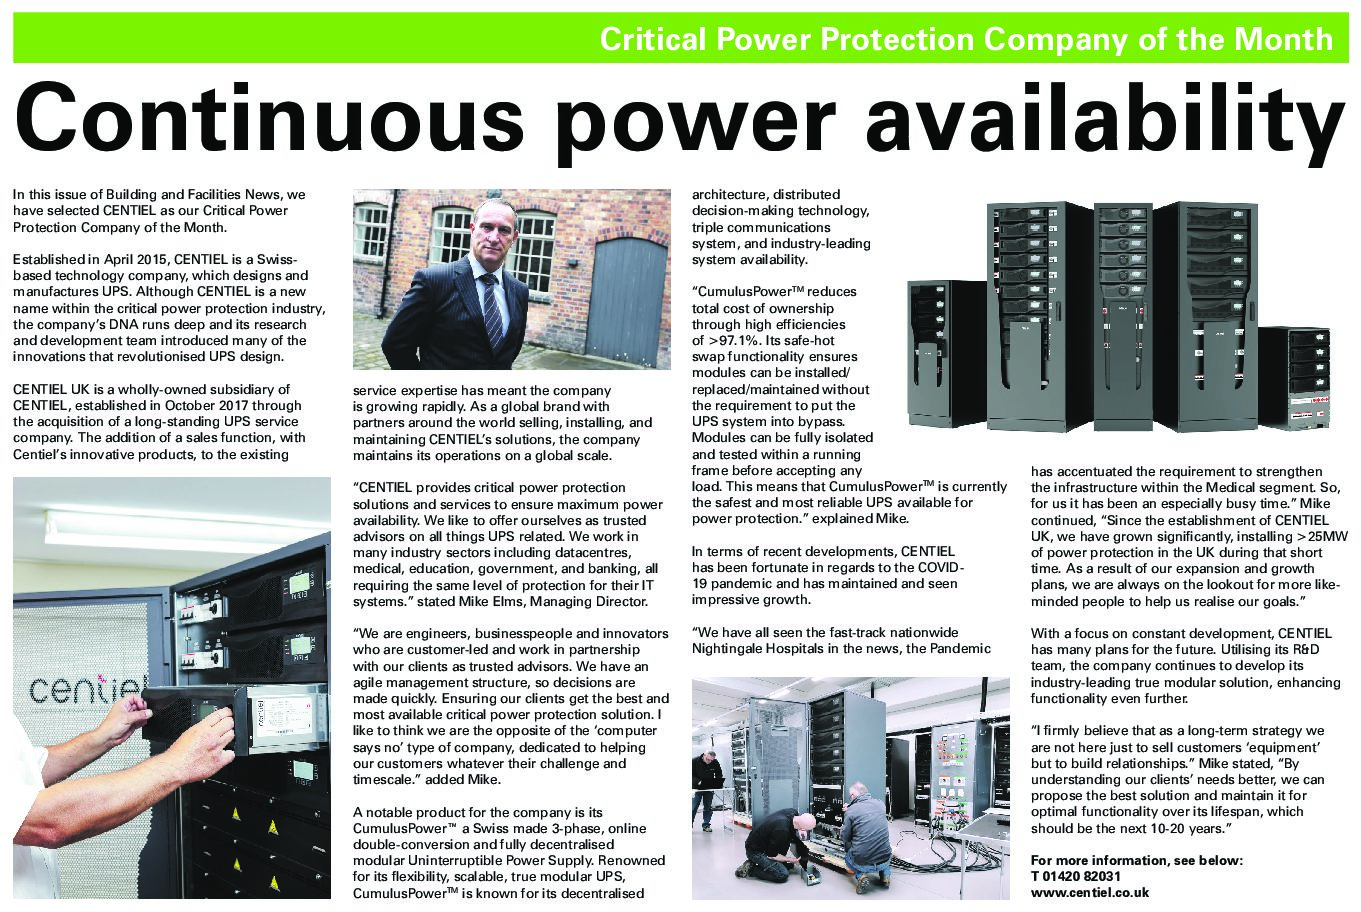 Continuous Power Availability – Critical Power Protection Company of the Month